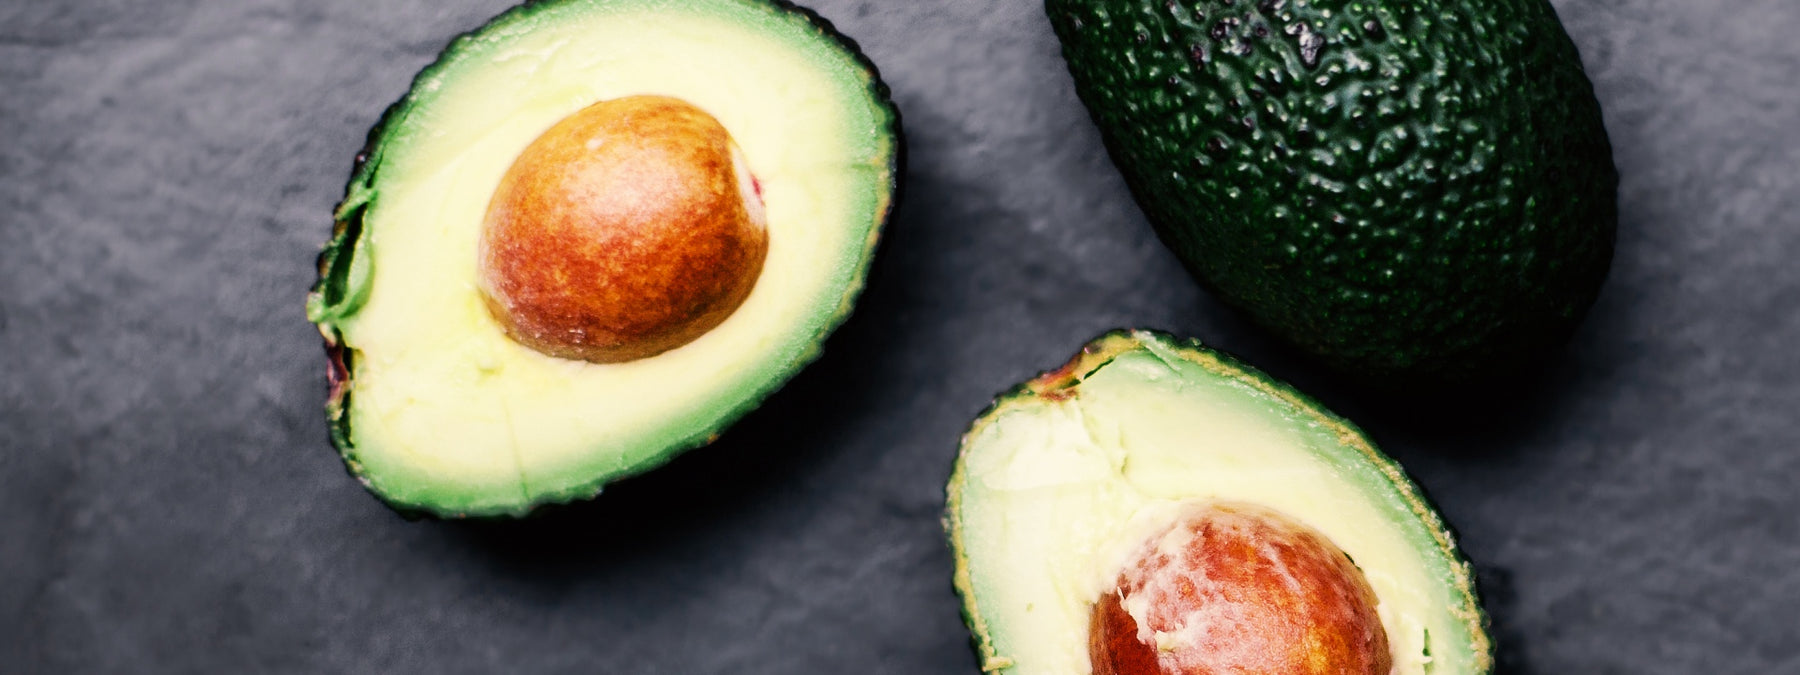 FDA: Frosted Flakes Healthier Than an Avocado